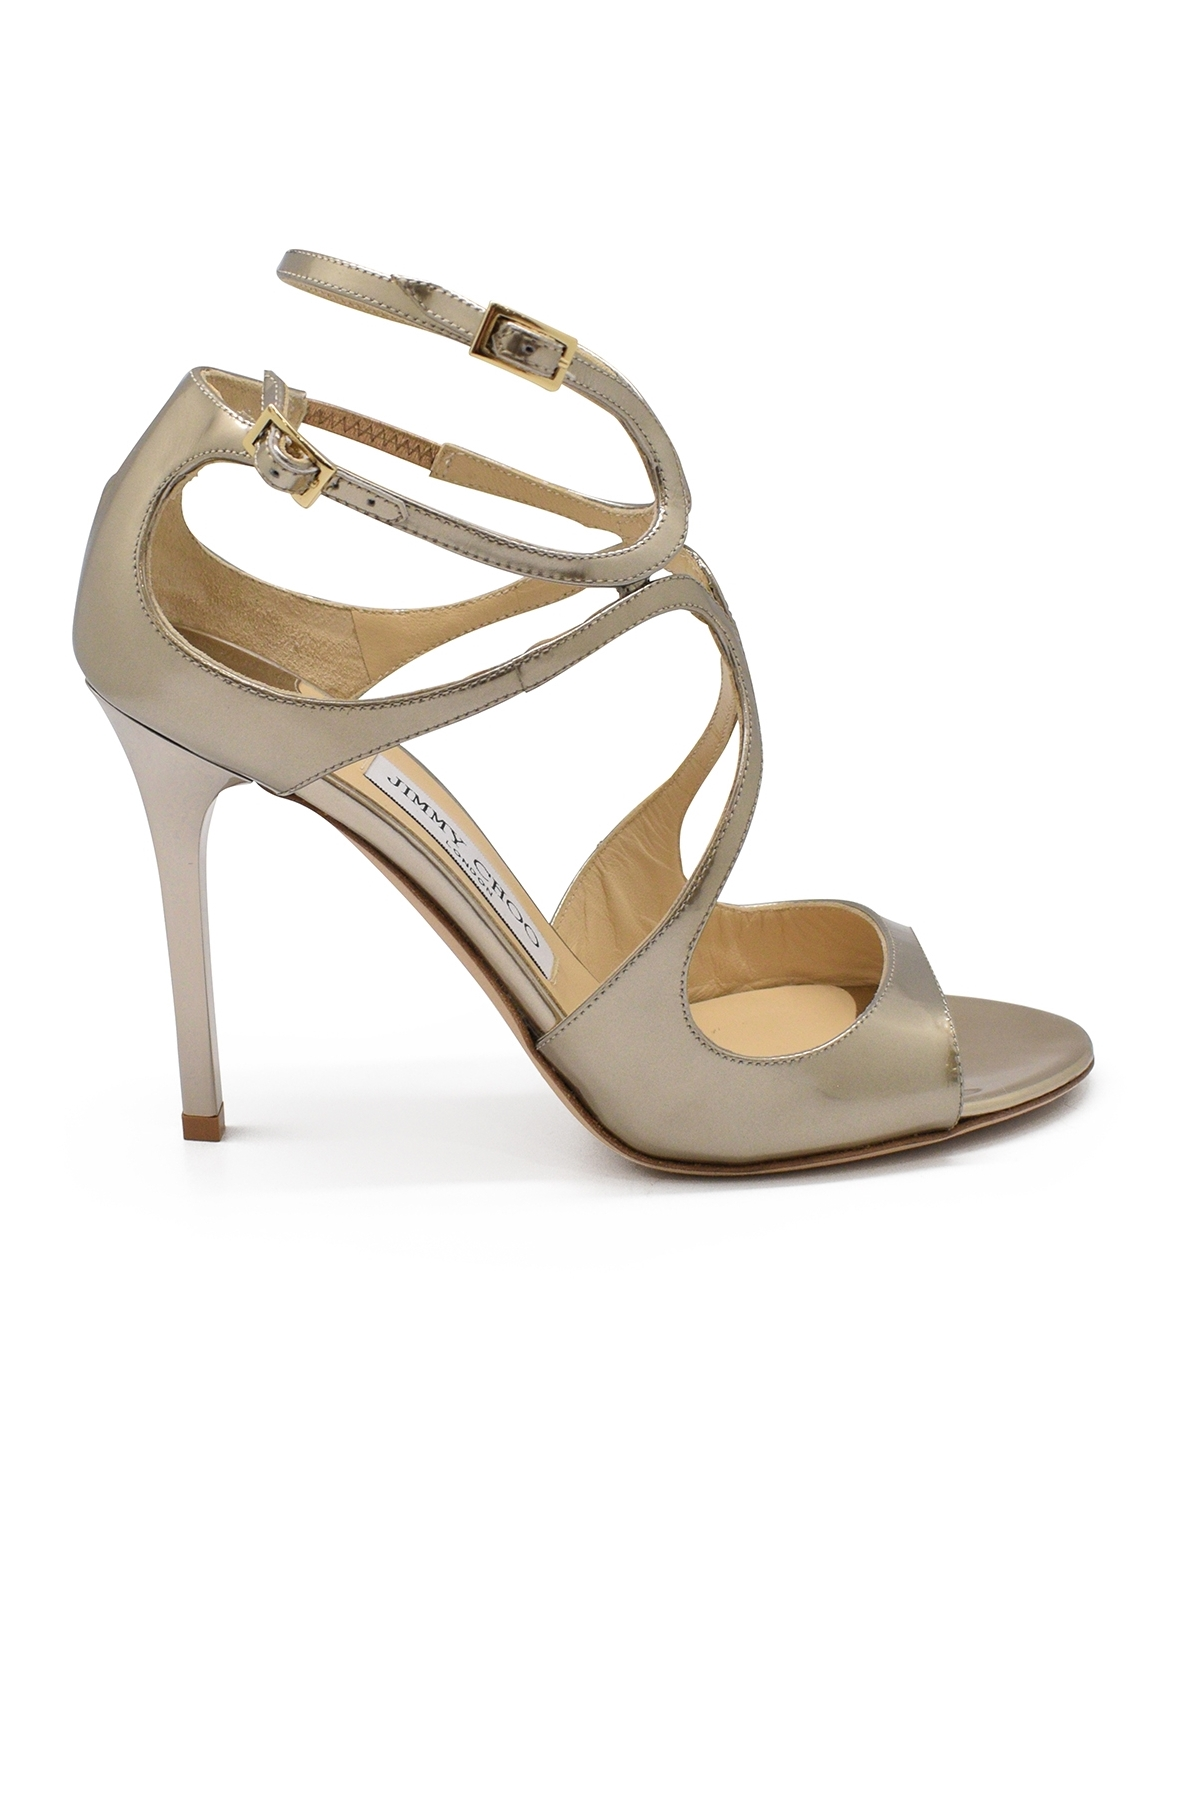 Jimmy Choo Lang in champagne mirror liquid leather with high heel